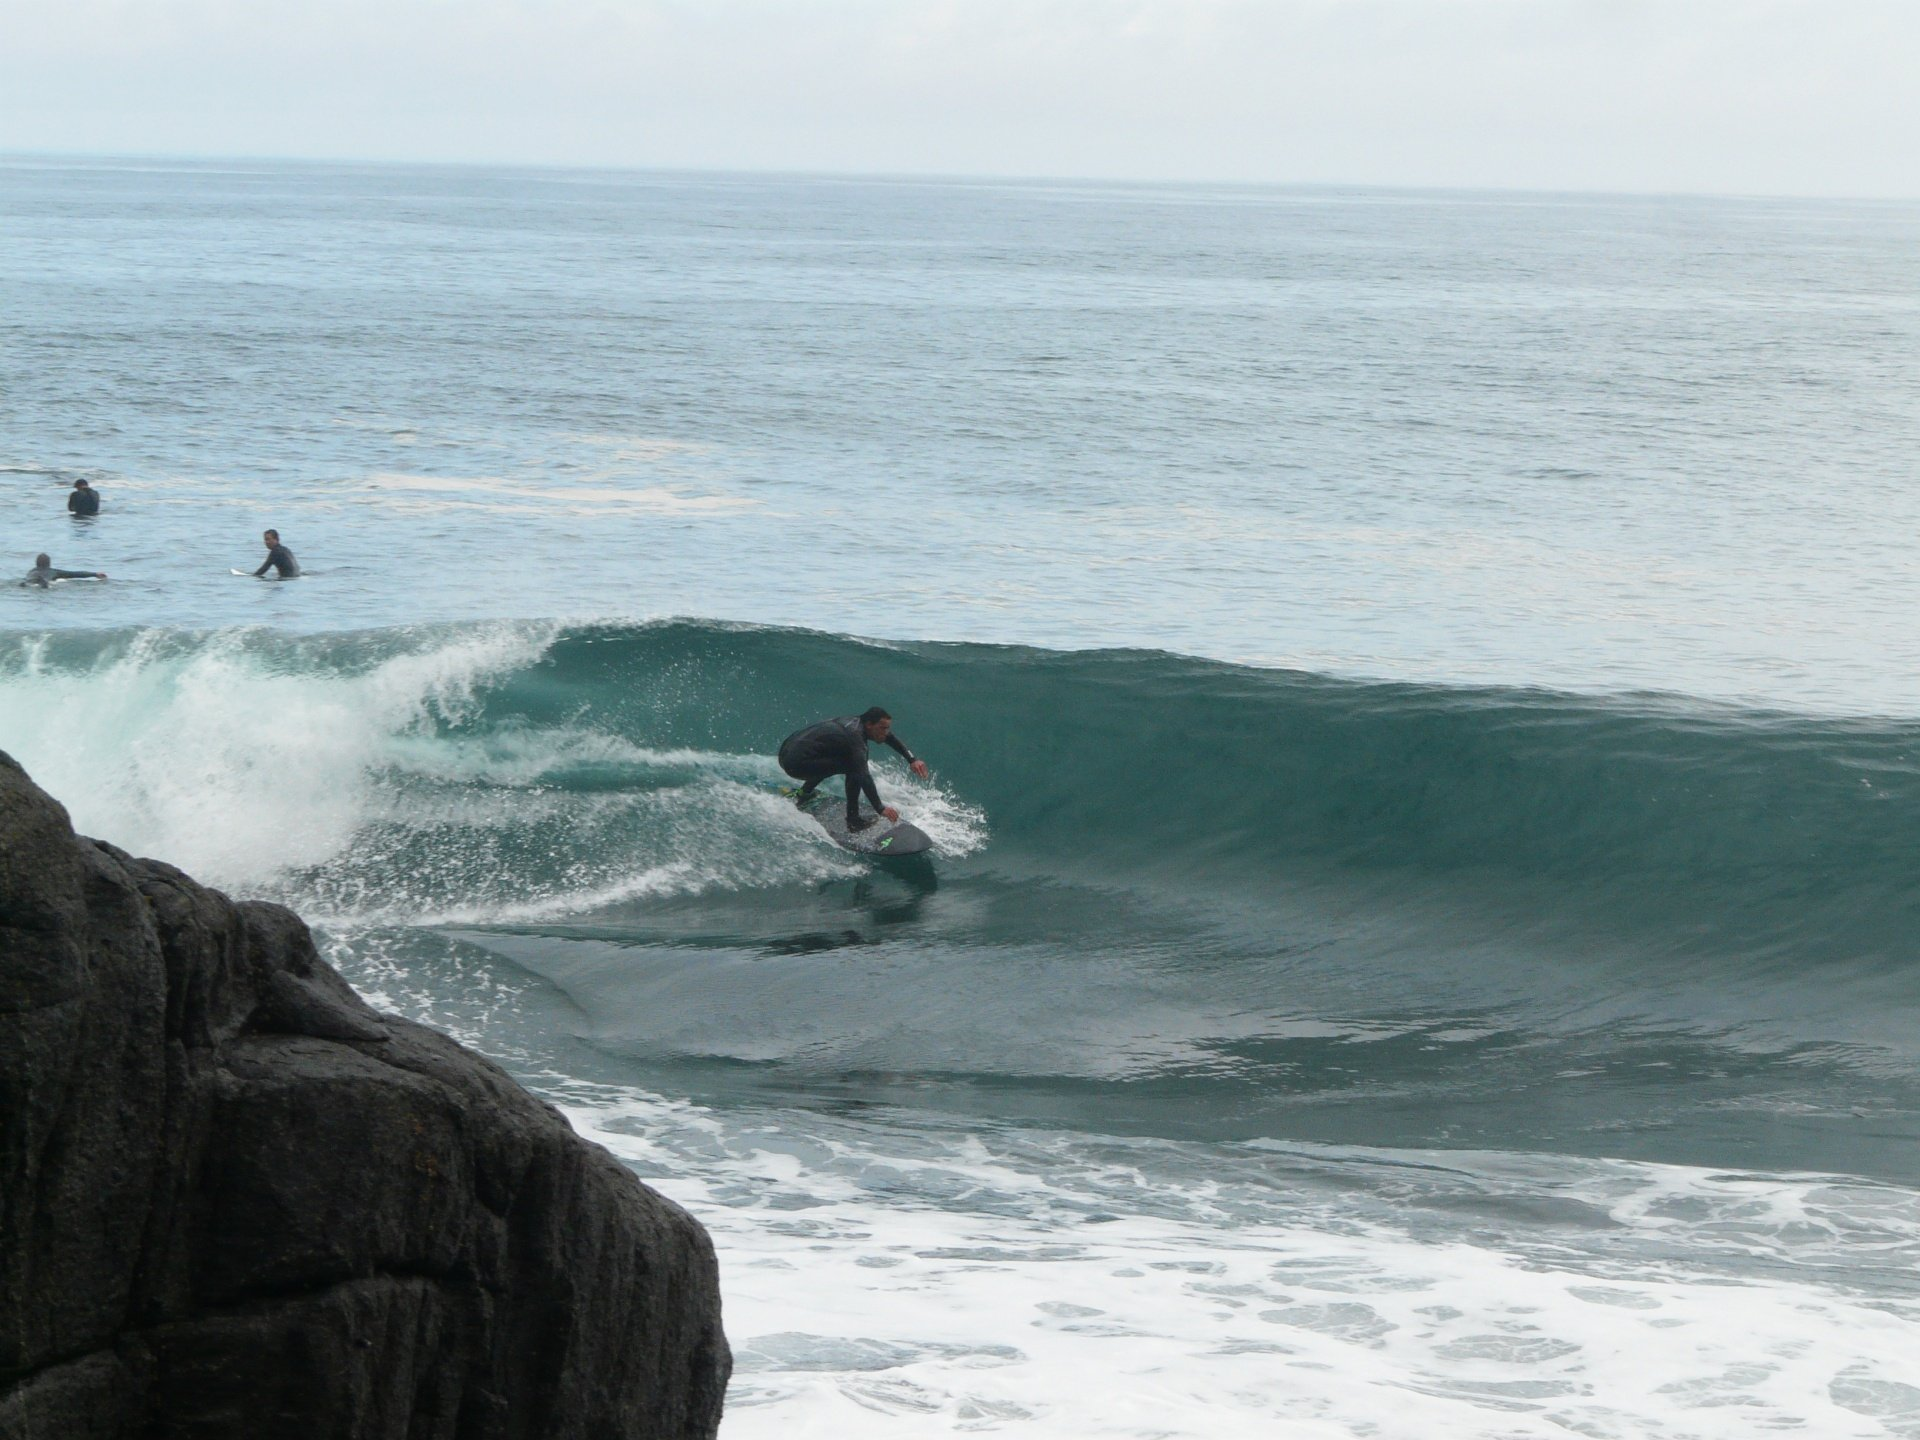 Pablo Leites Shapes (Surfer and Shaper)'s photo of Pullay